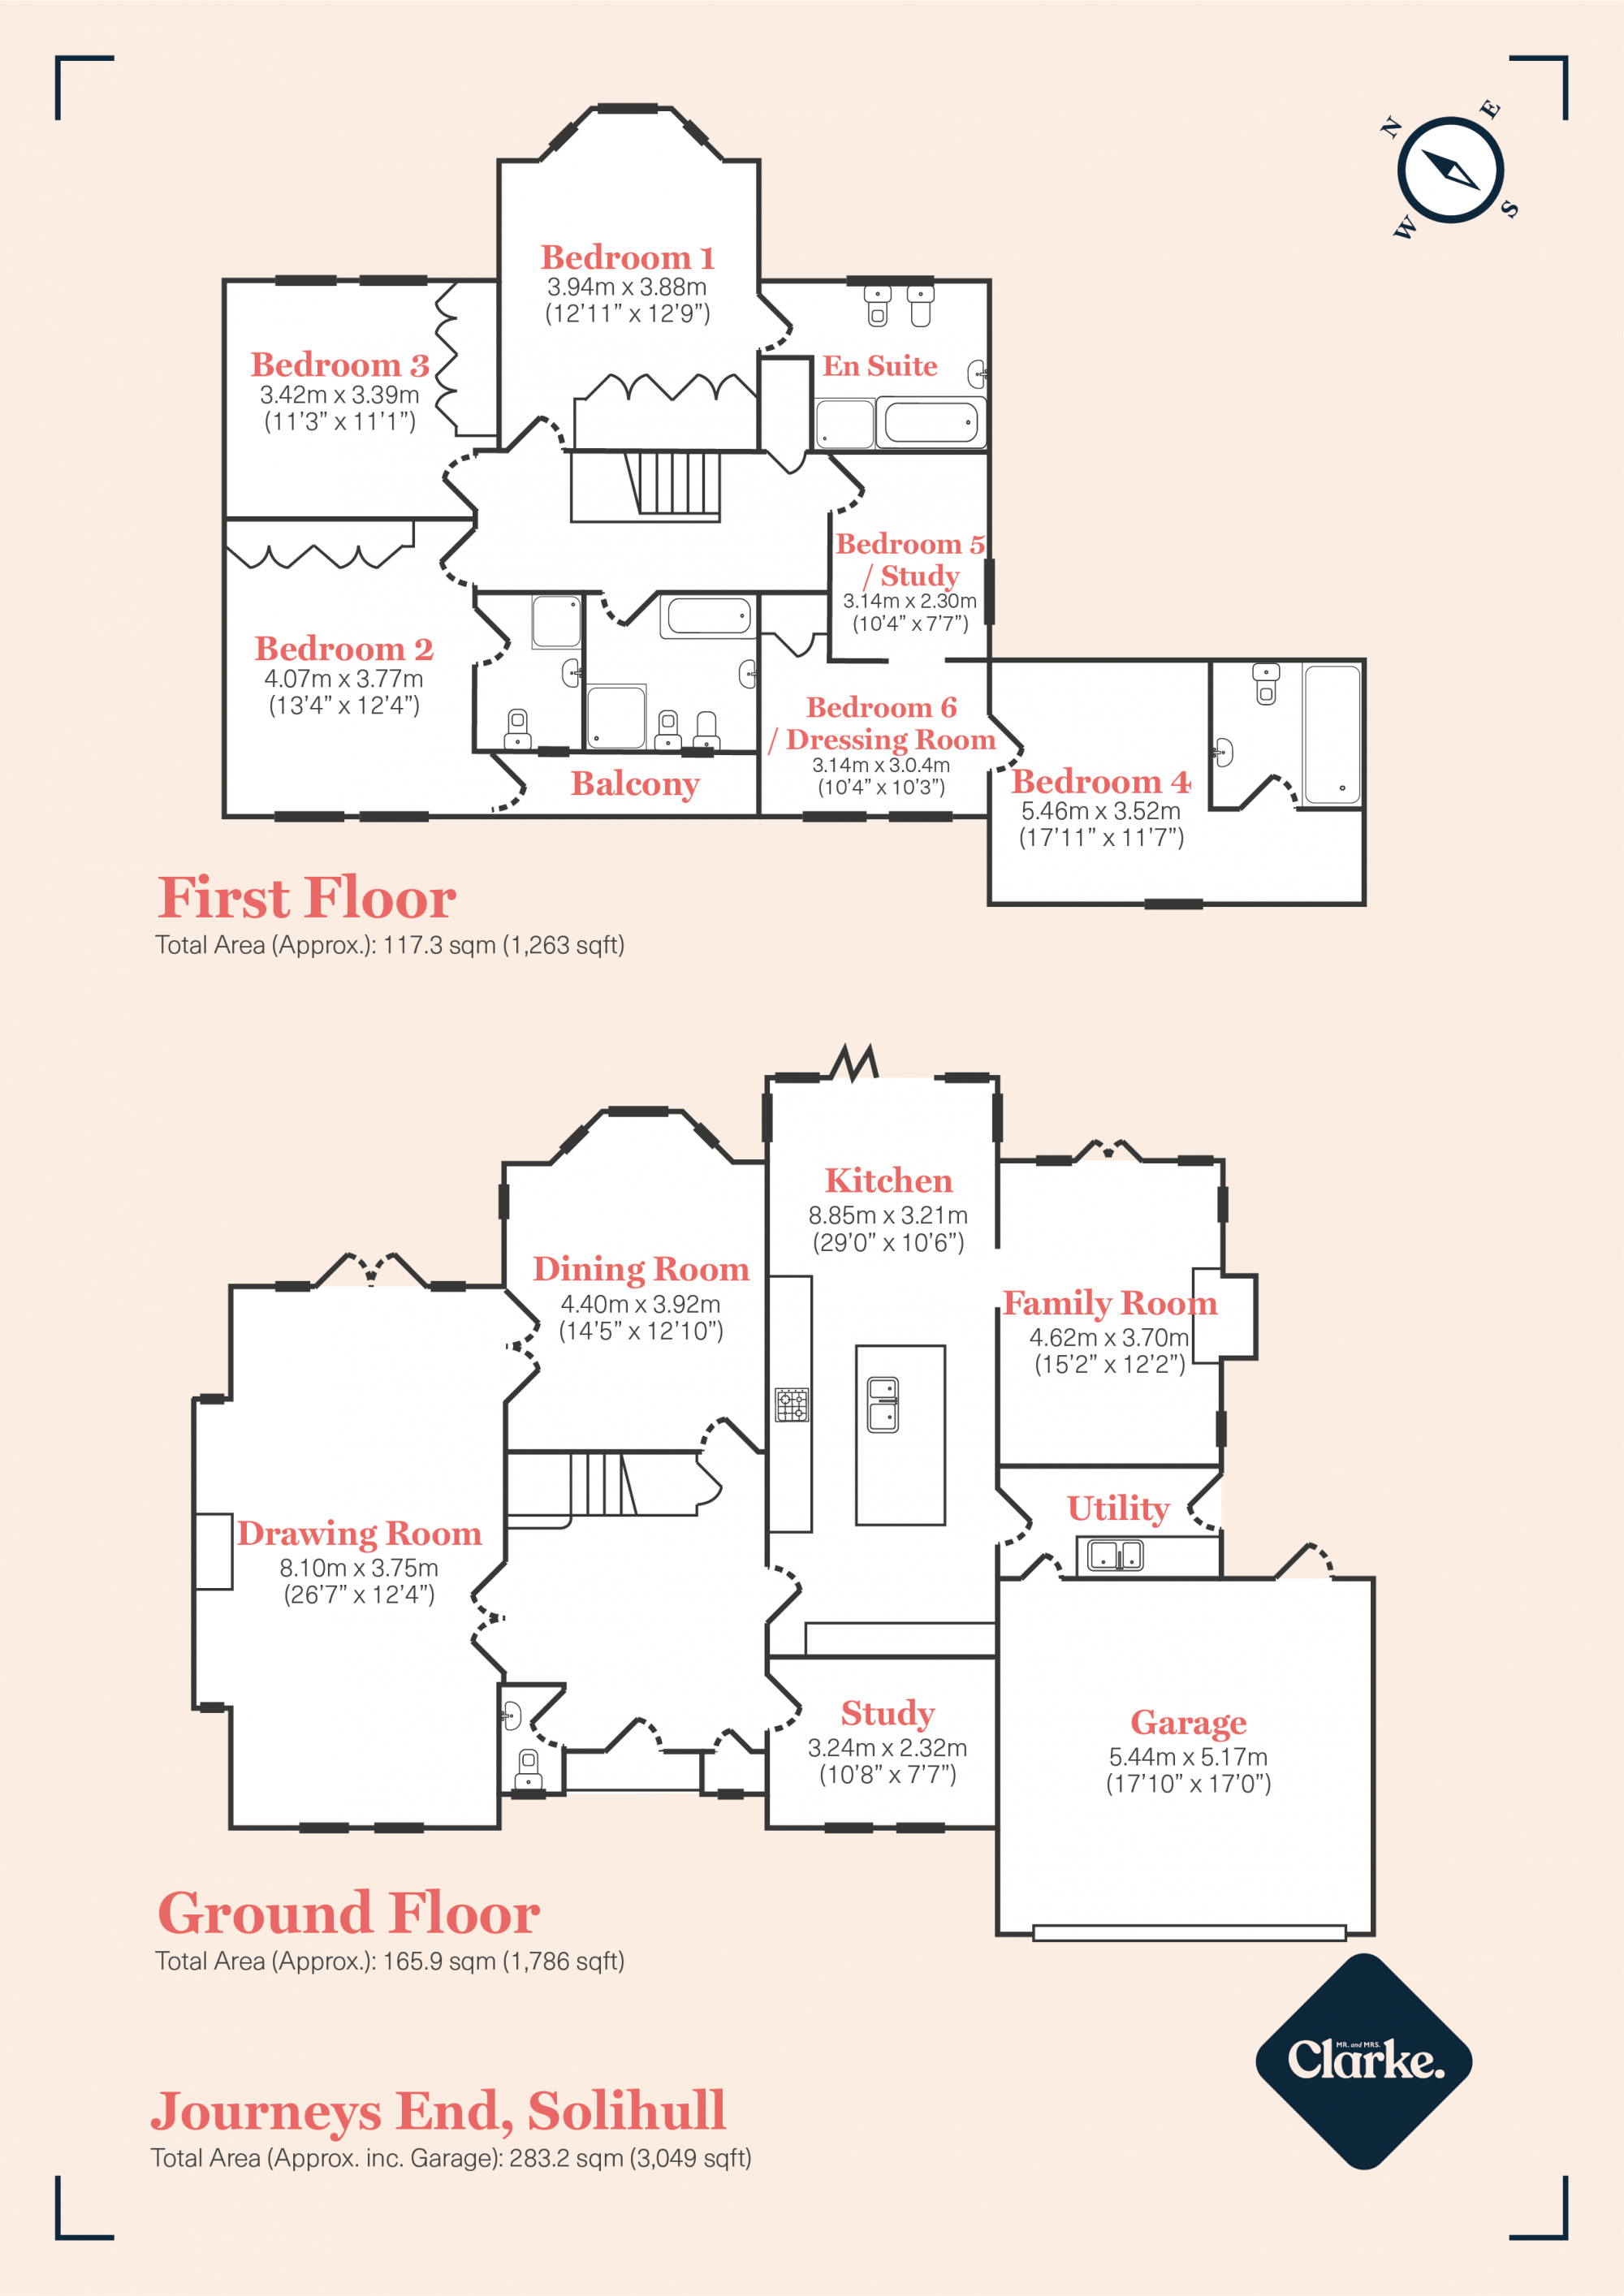 Journeys End, Solihull. Floorplan.